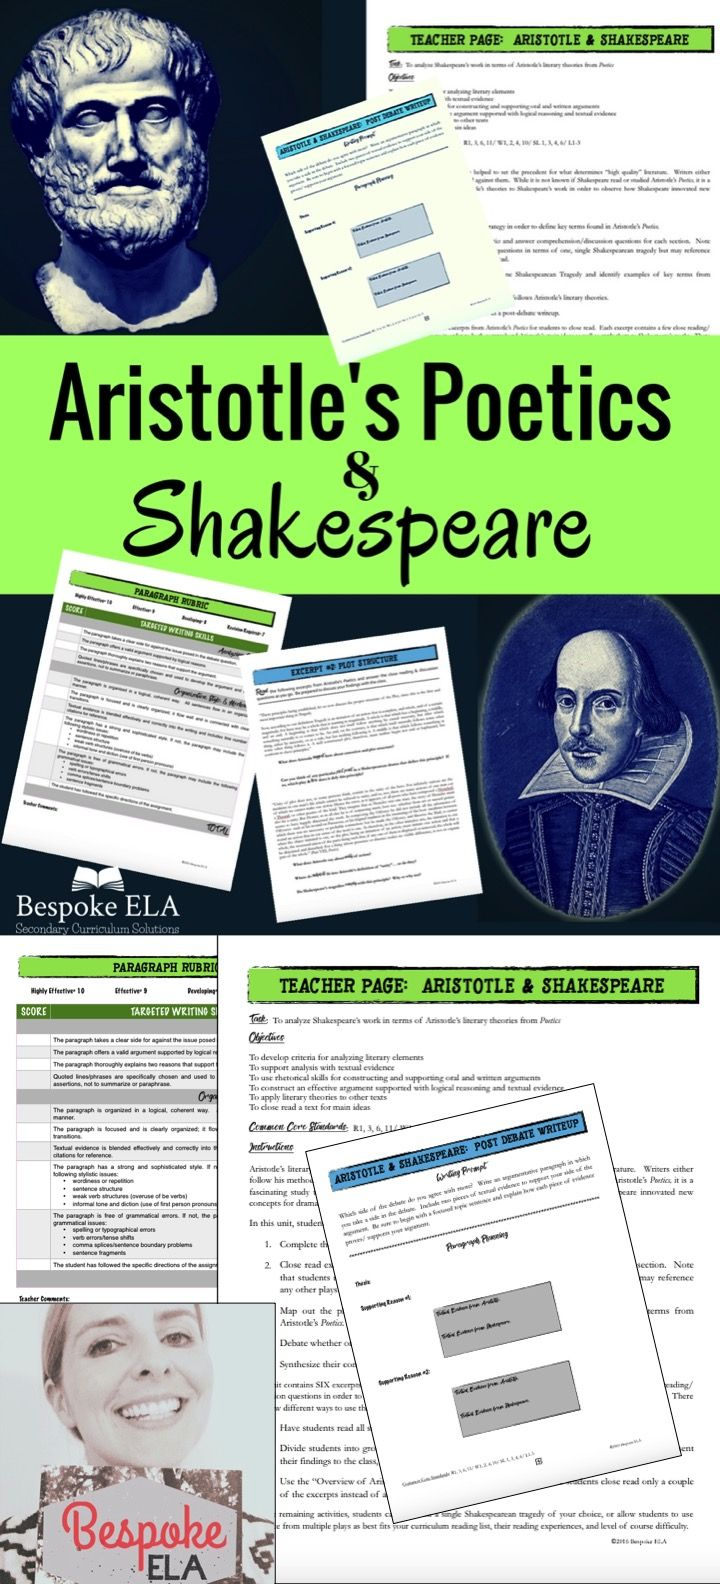 a freudian perspective of shakespeares macbeth essay Shakespeare's women | feminism and shakespeare  i don't think that lady macbeth, portia (from julius caesar),  i don't want to get freudian,.